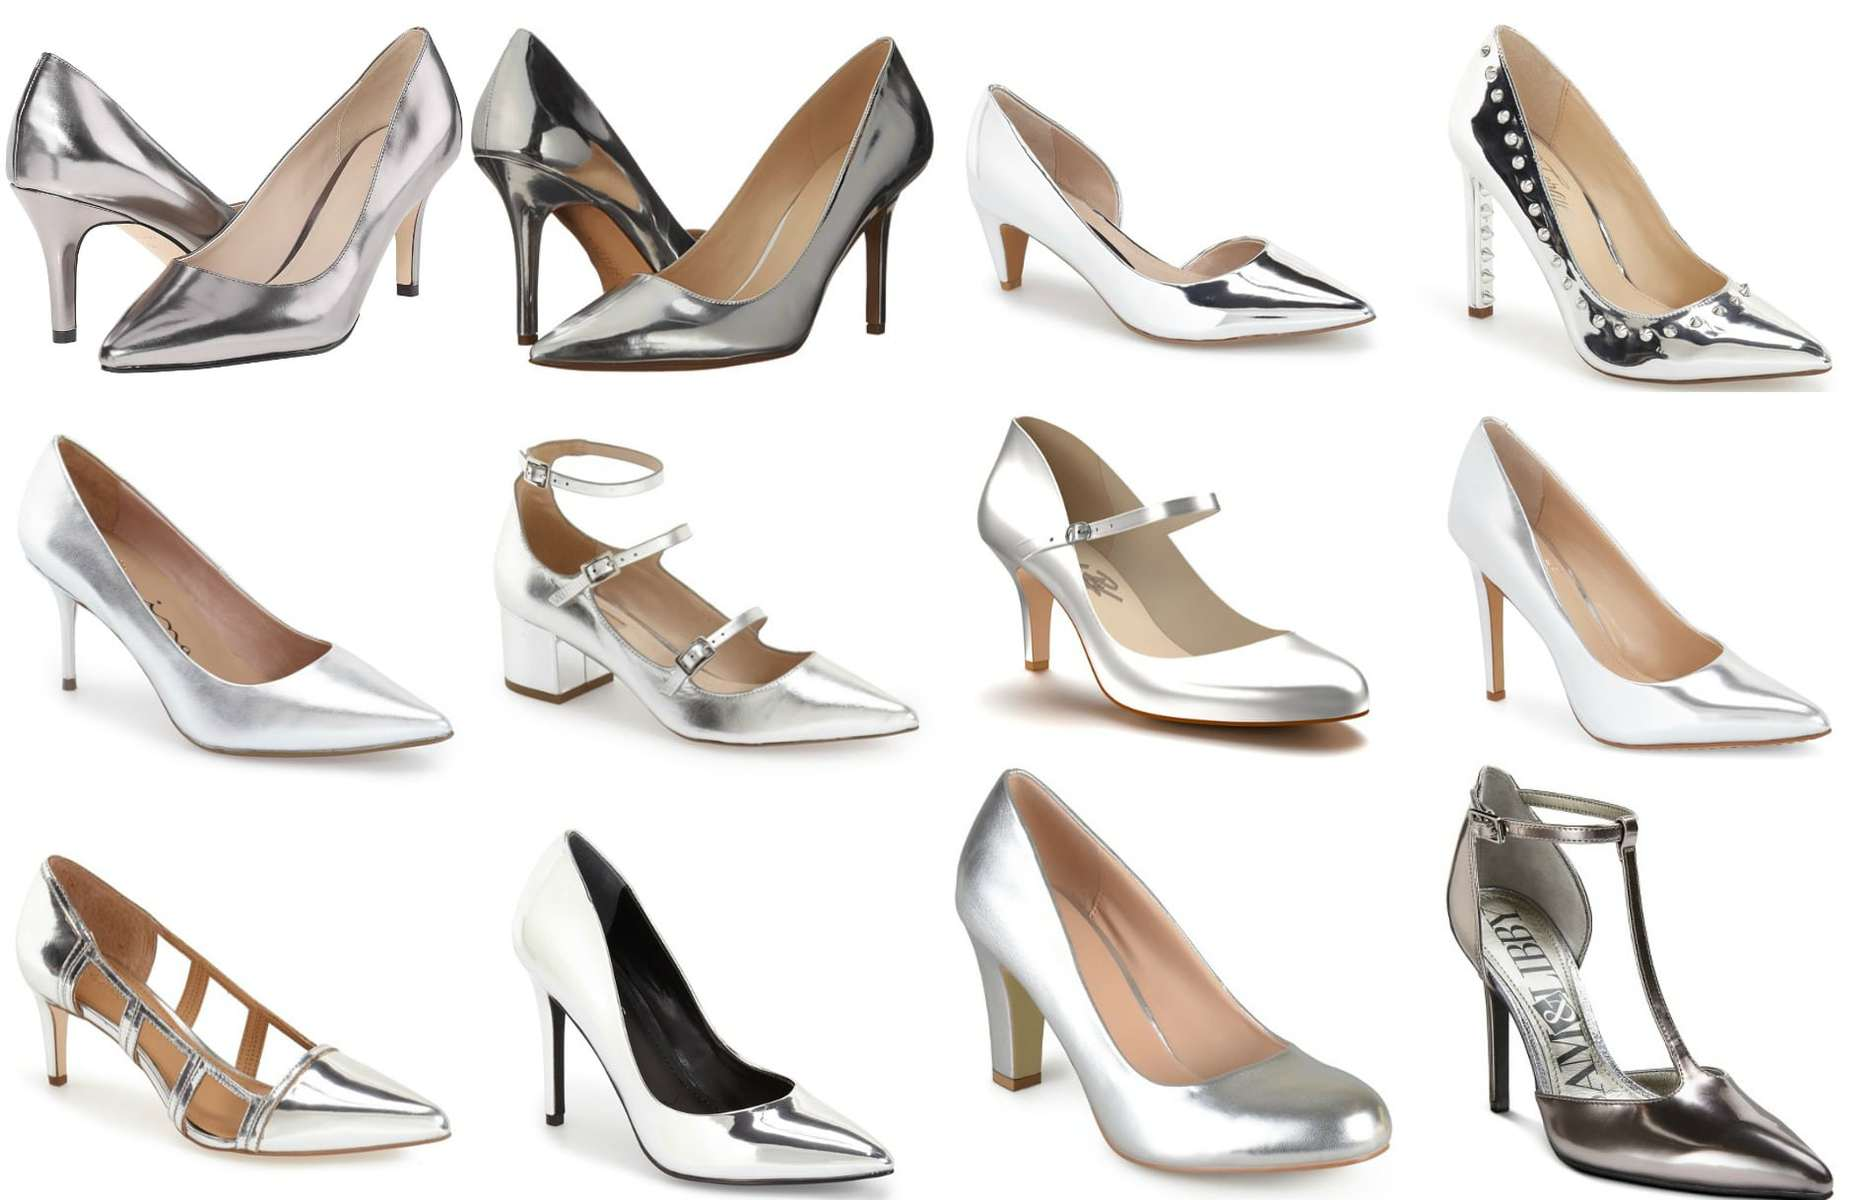 Wardrobe Oxygen - The best silver mirror finish pumps for 2016 my picks all heights and styles